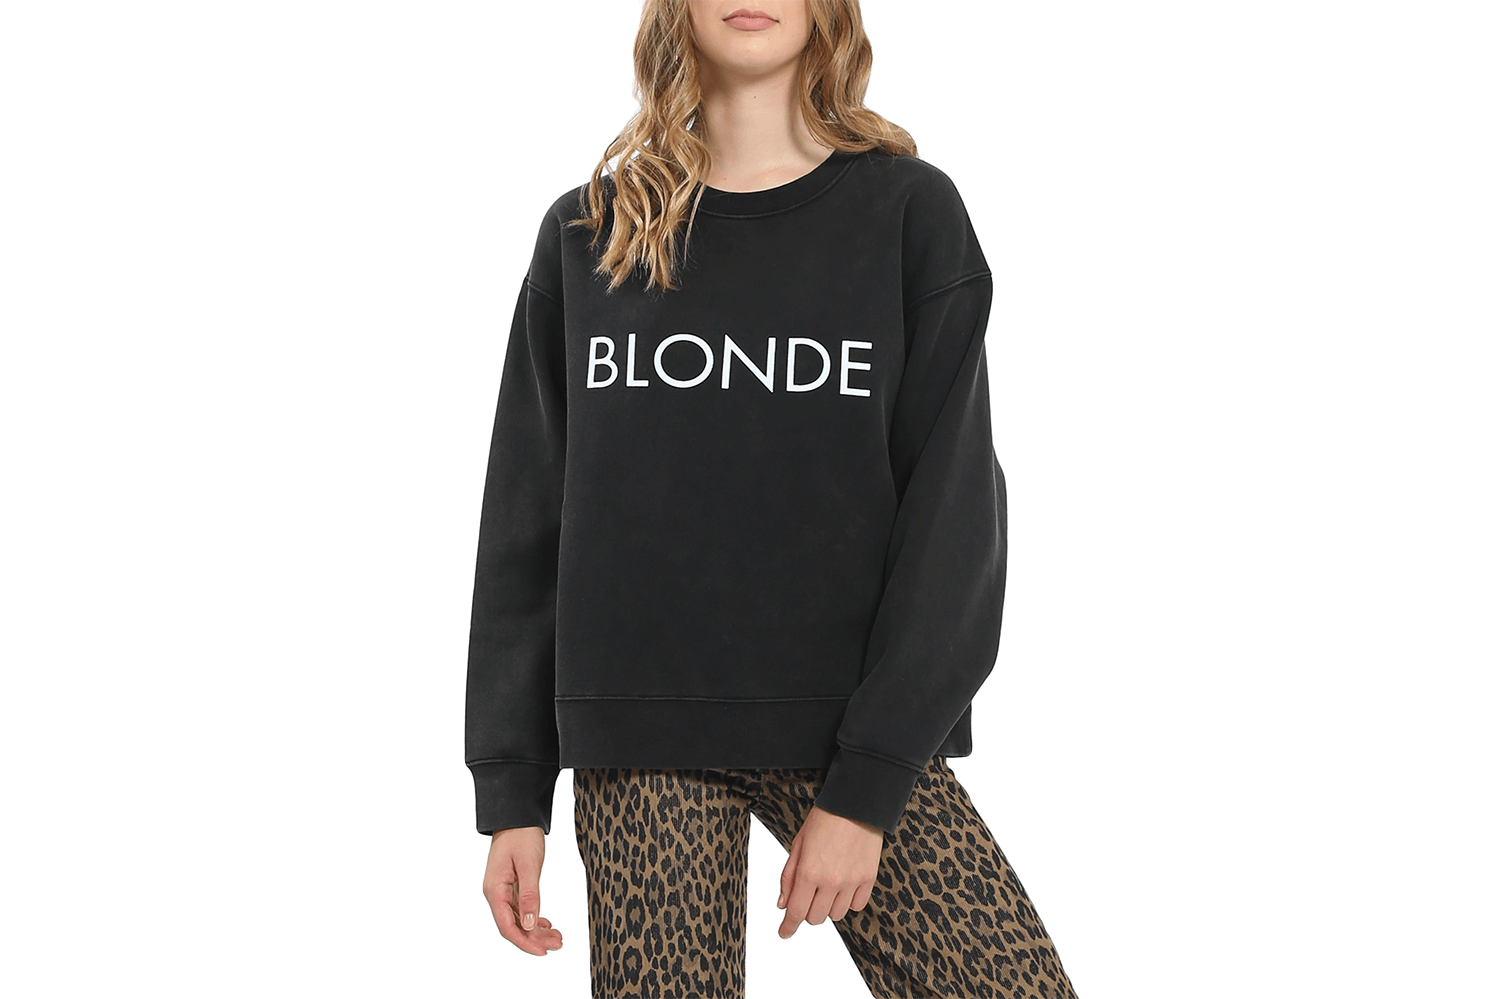 BLONDE STEP SISTER CREW-BTL155BL WOMENS SOFTGOODS BRUNETTE